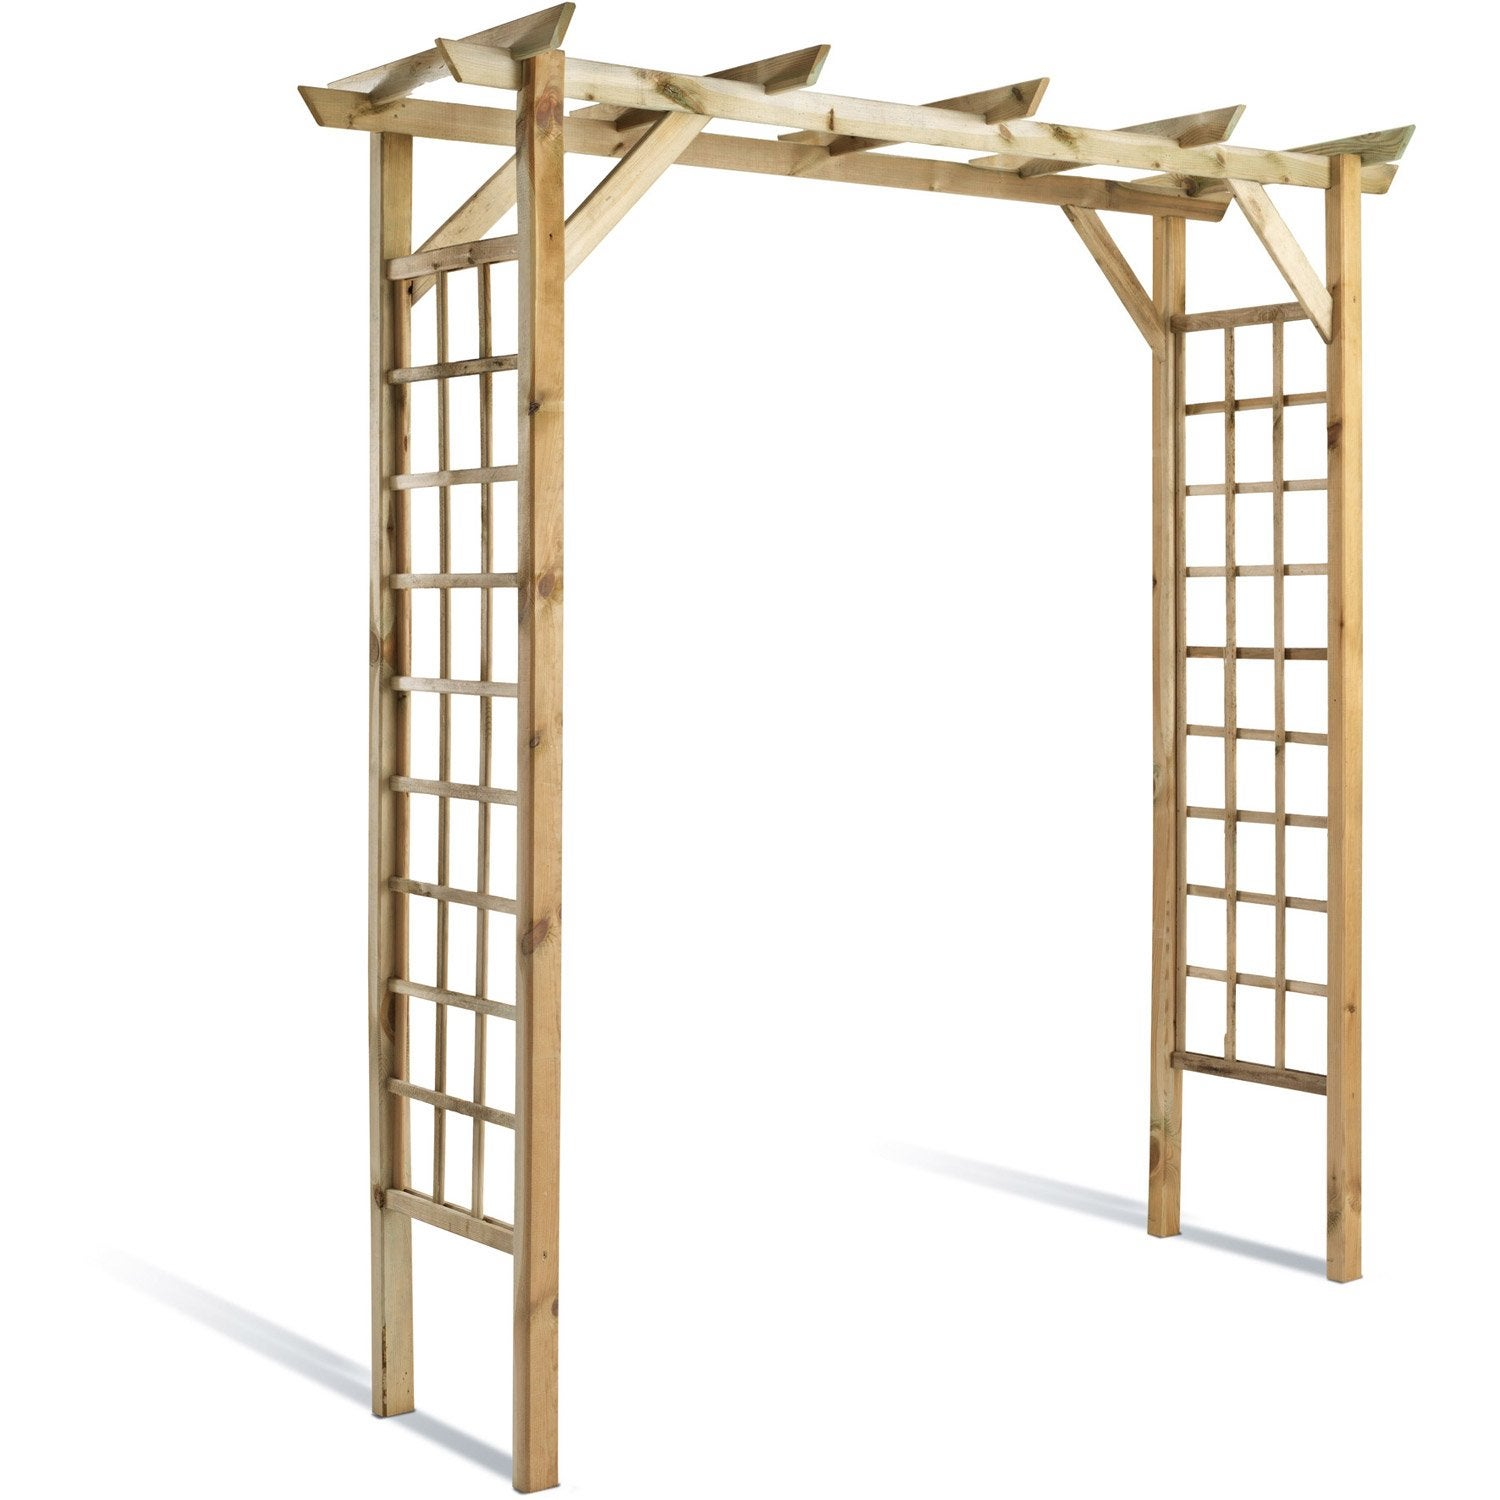 Garage pergola design penmie bee - Garage bois en kit leroy merlin ...